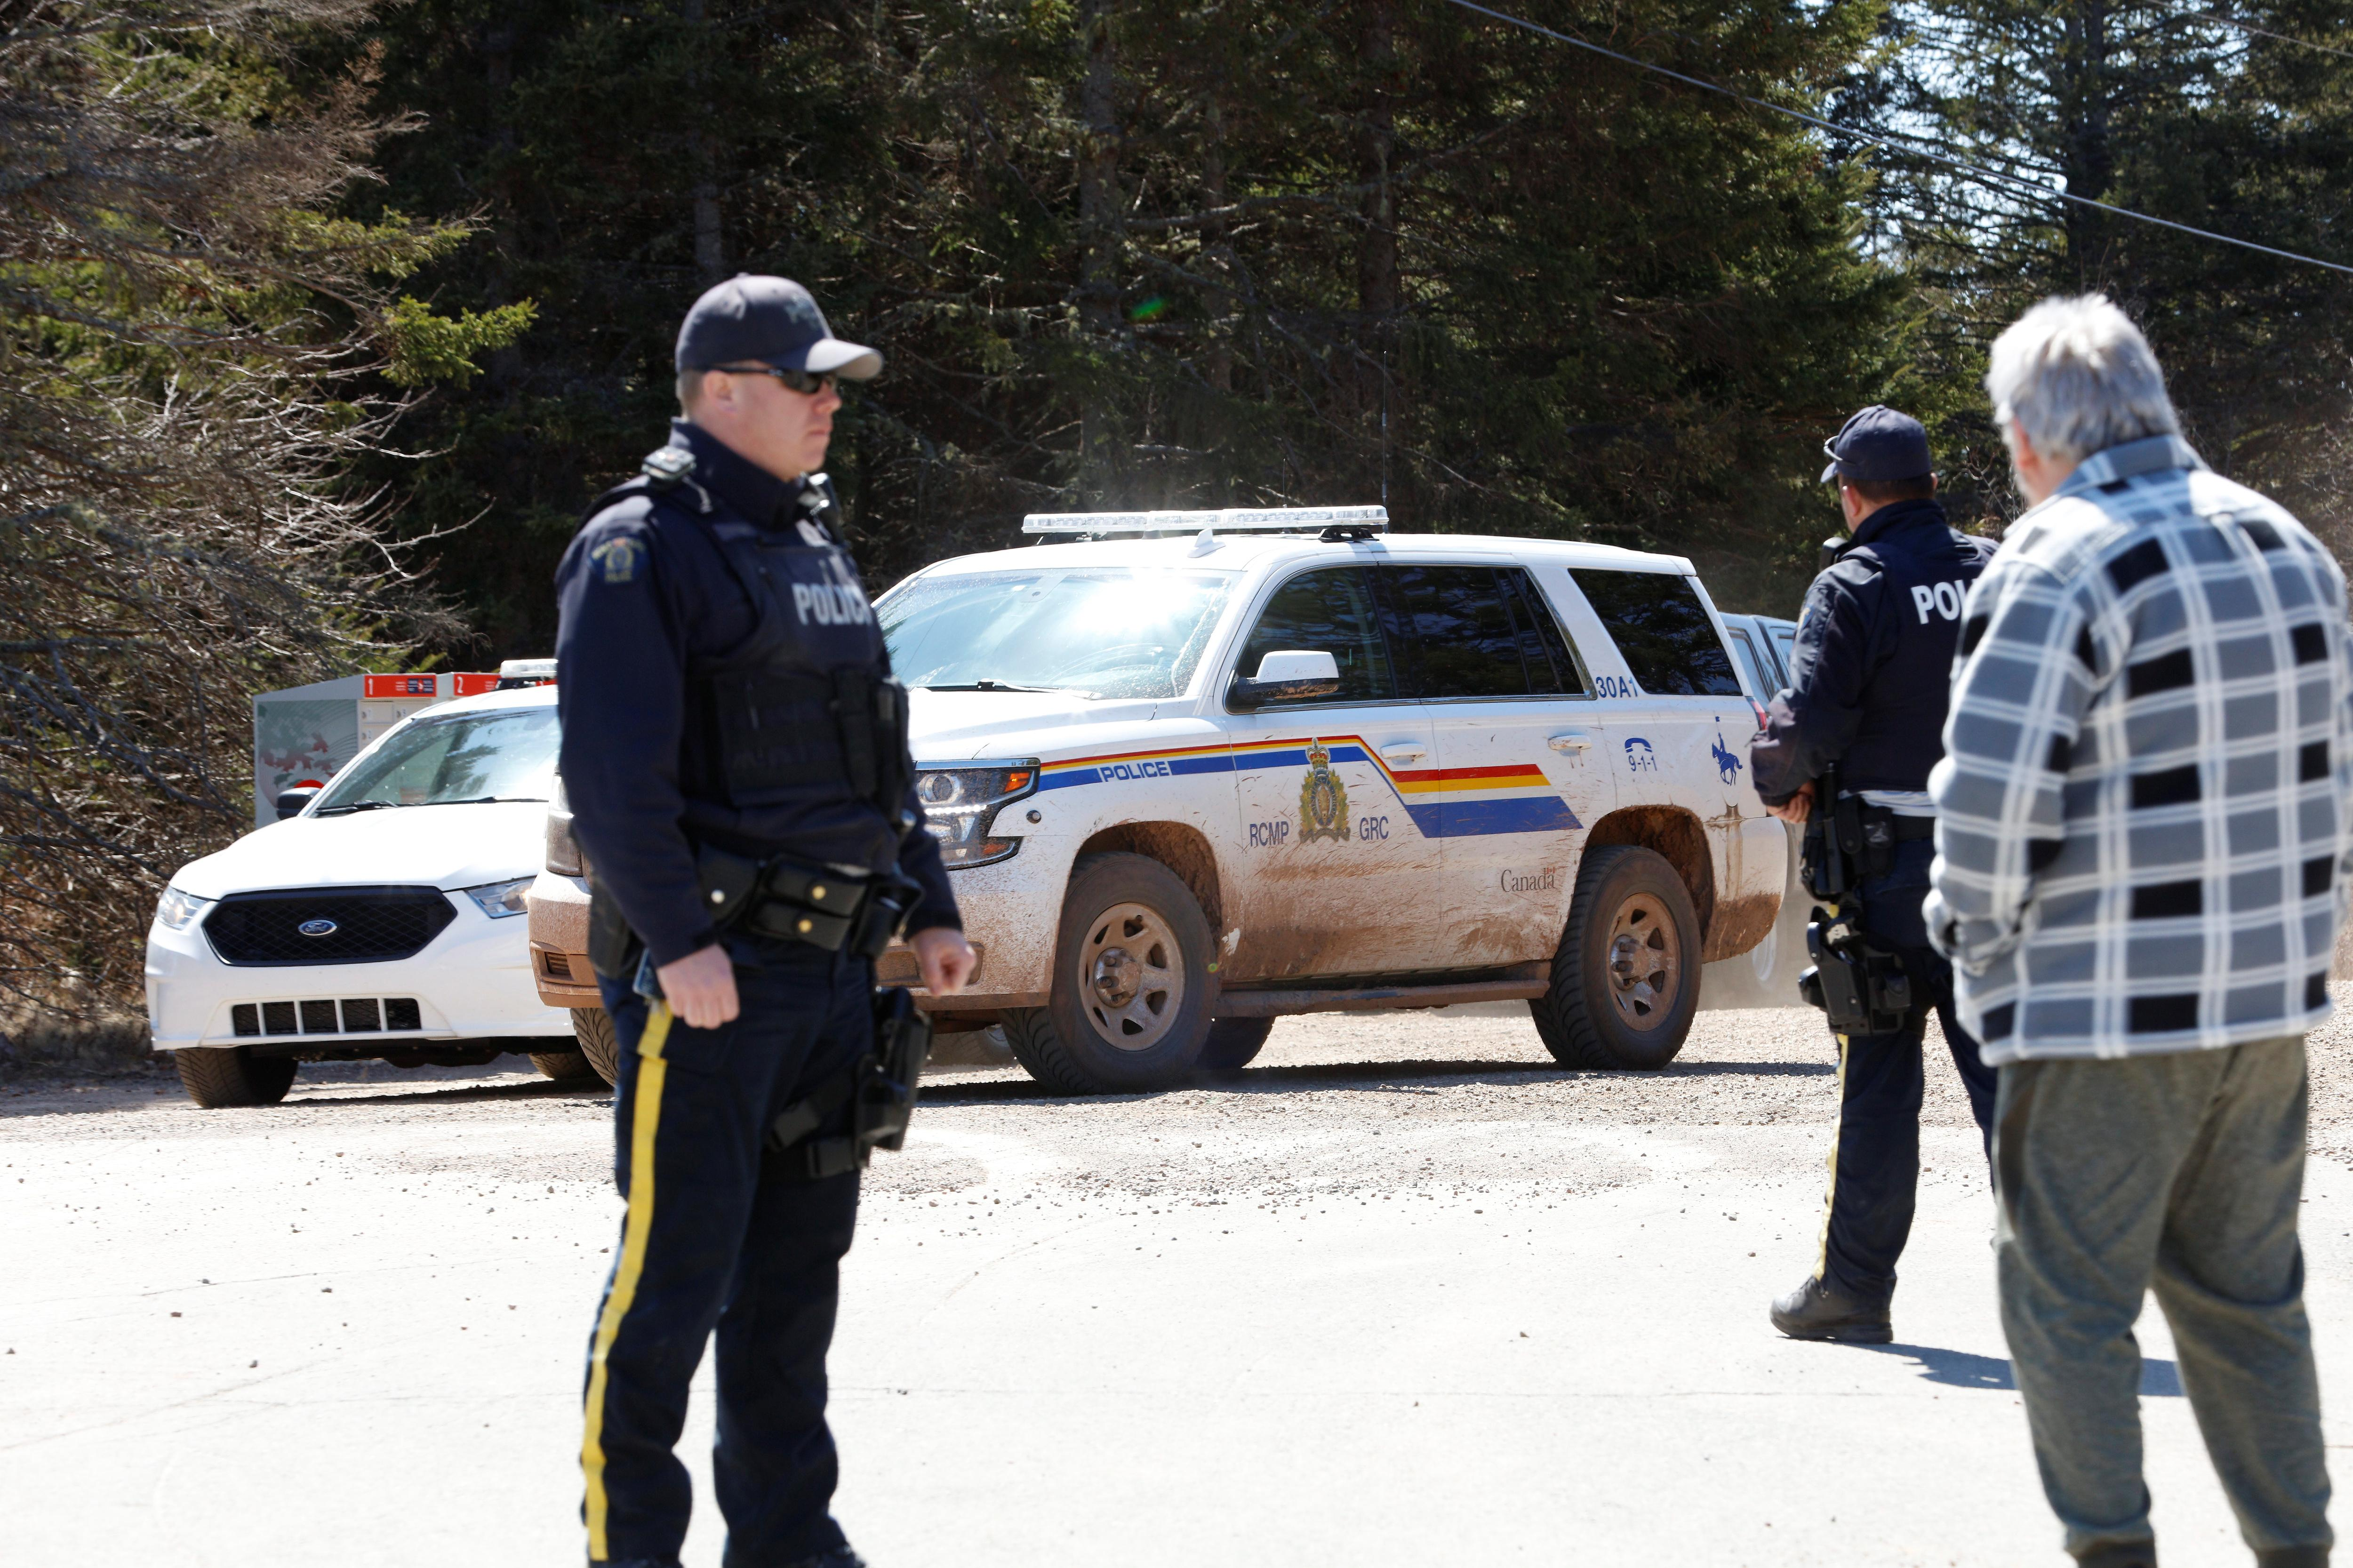 Gunman kills at least 16 in Nova Scotia in Canada's worst mass shooting